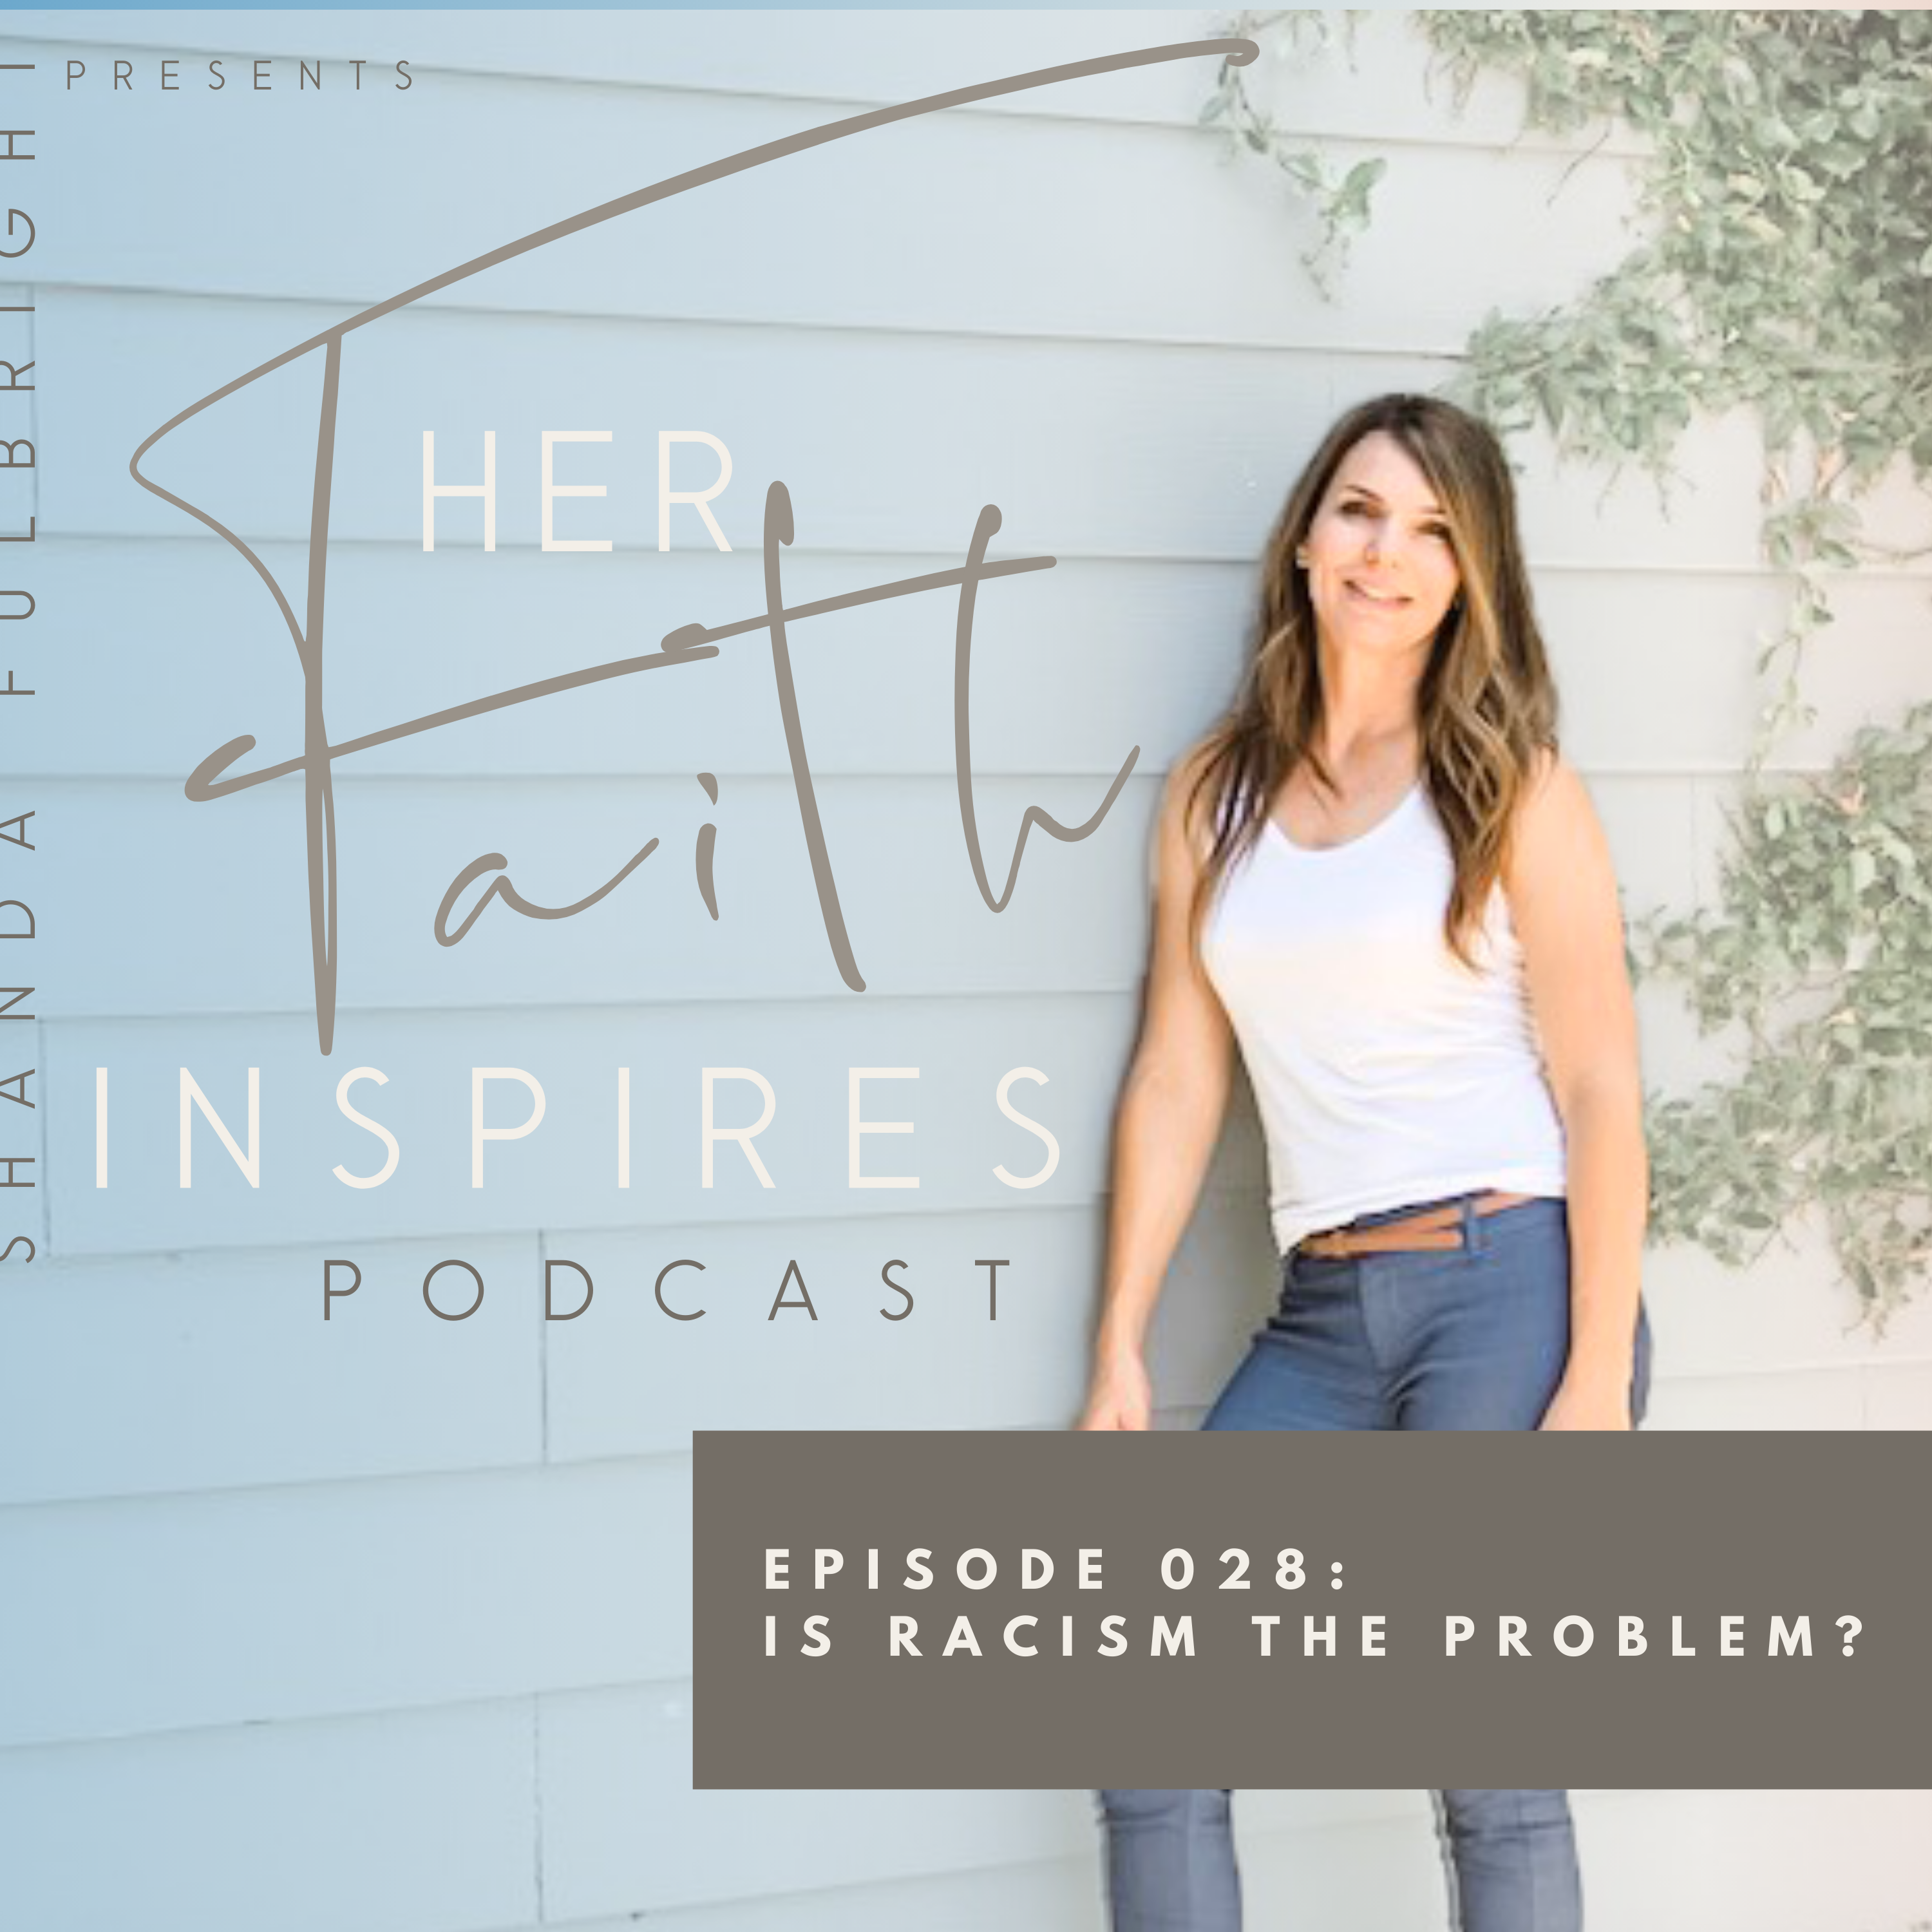 SF Podcast Episode 28 - HER FAITH INSPIRES 028 : Is racism the problem?